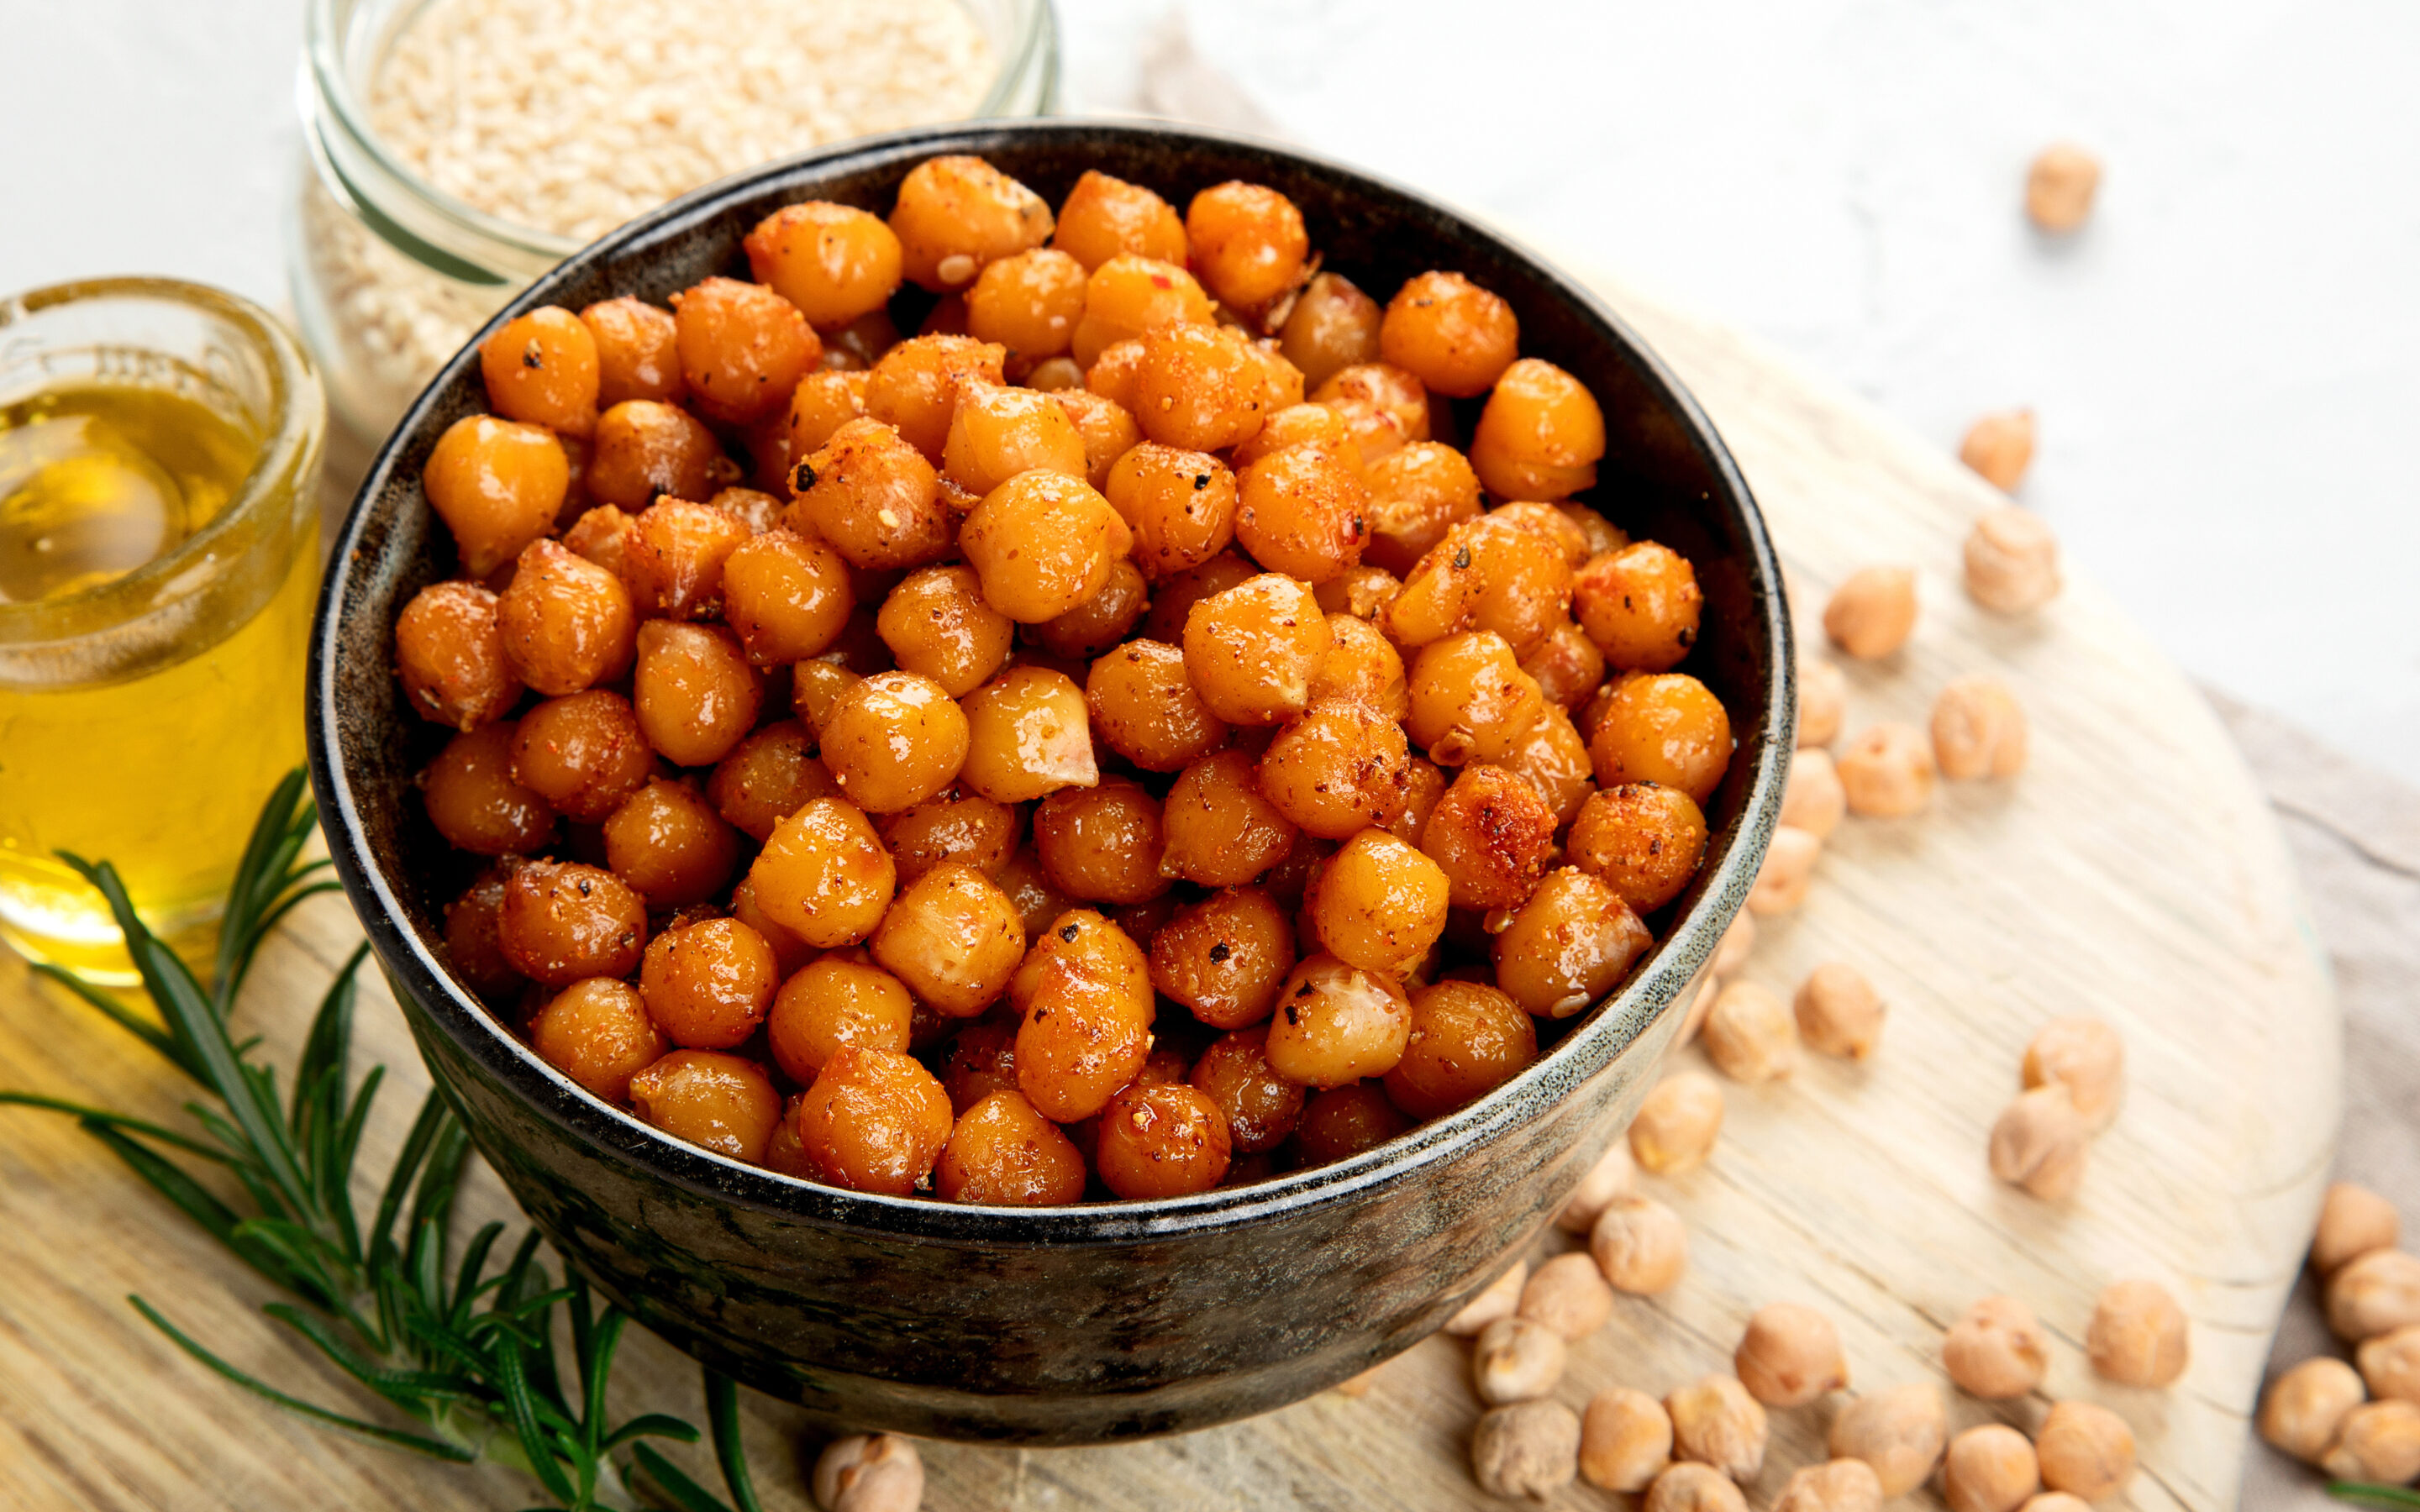 Homemade roasted chickpeas in a bowl